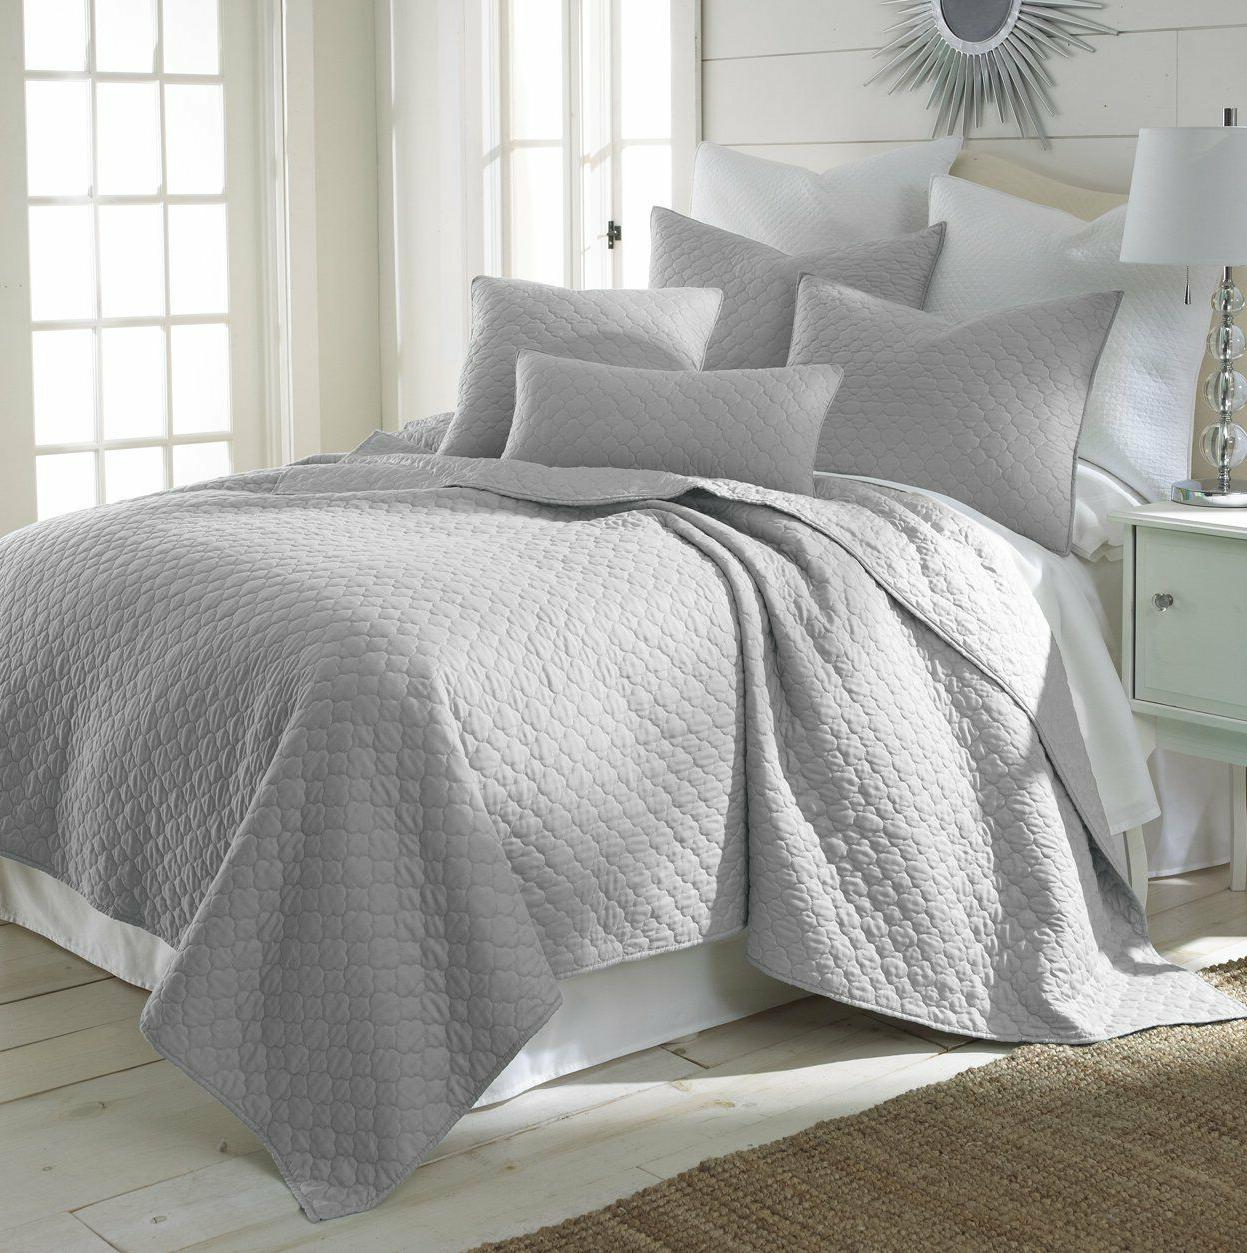 midwest nena solid closout quilt bedding bedspread